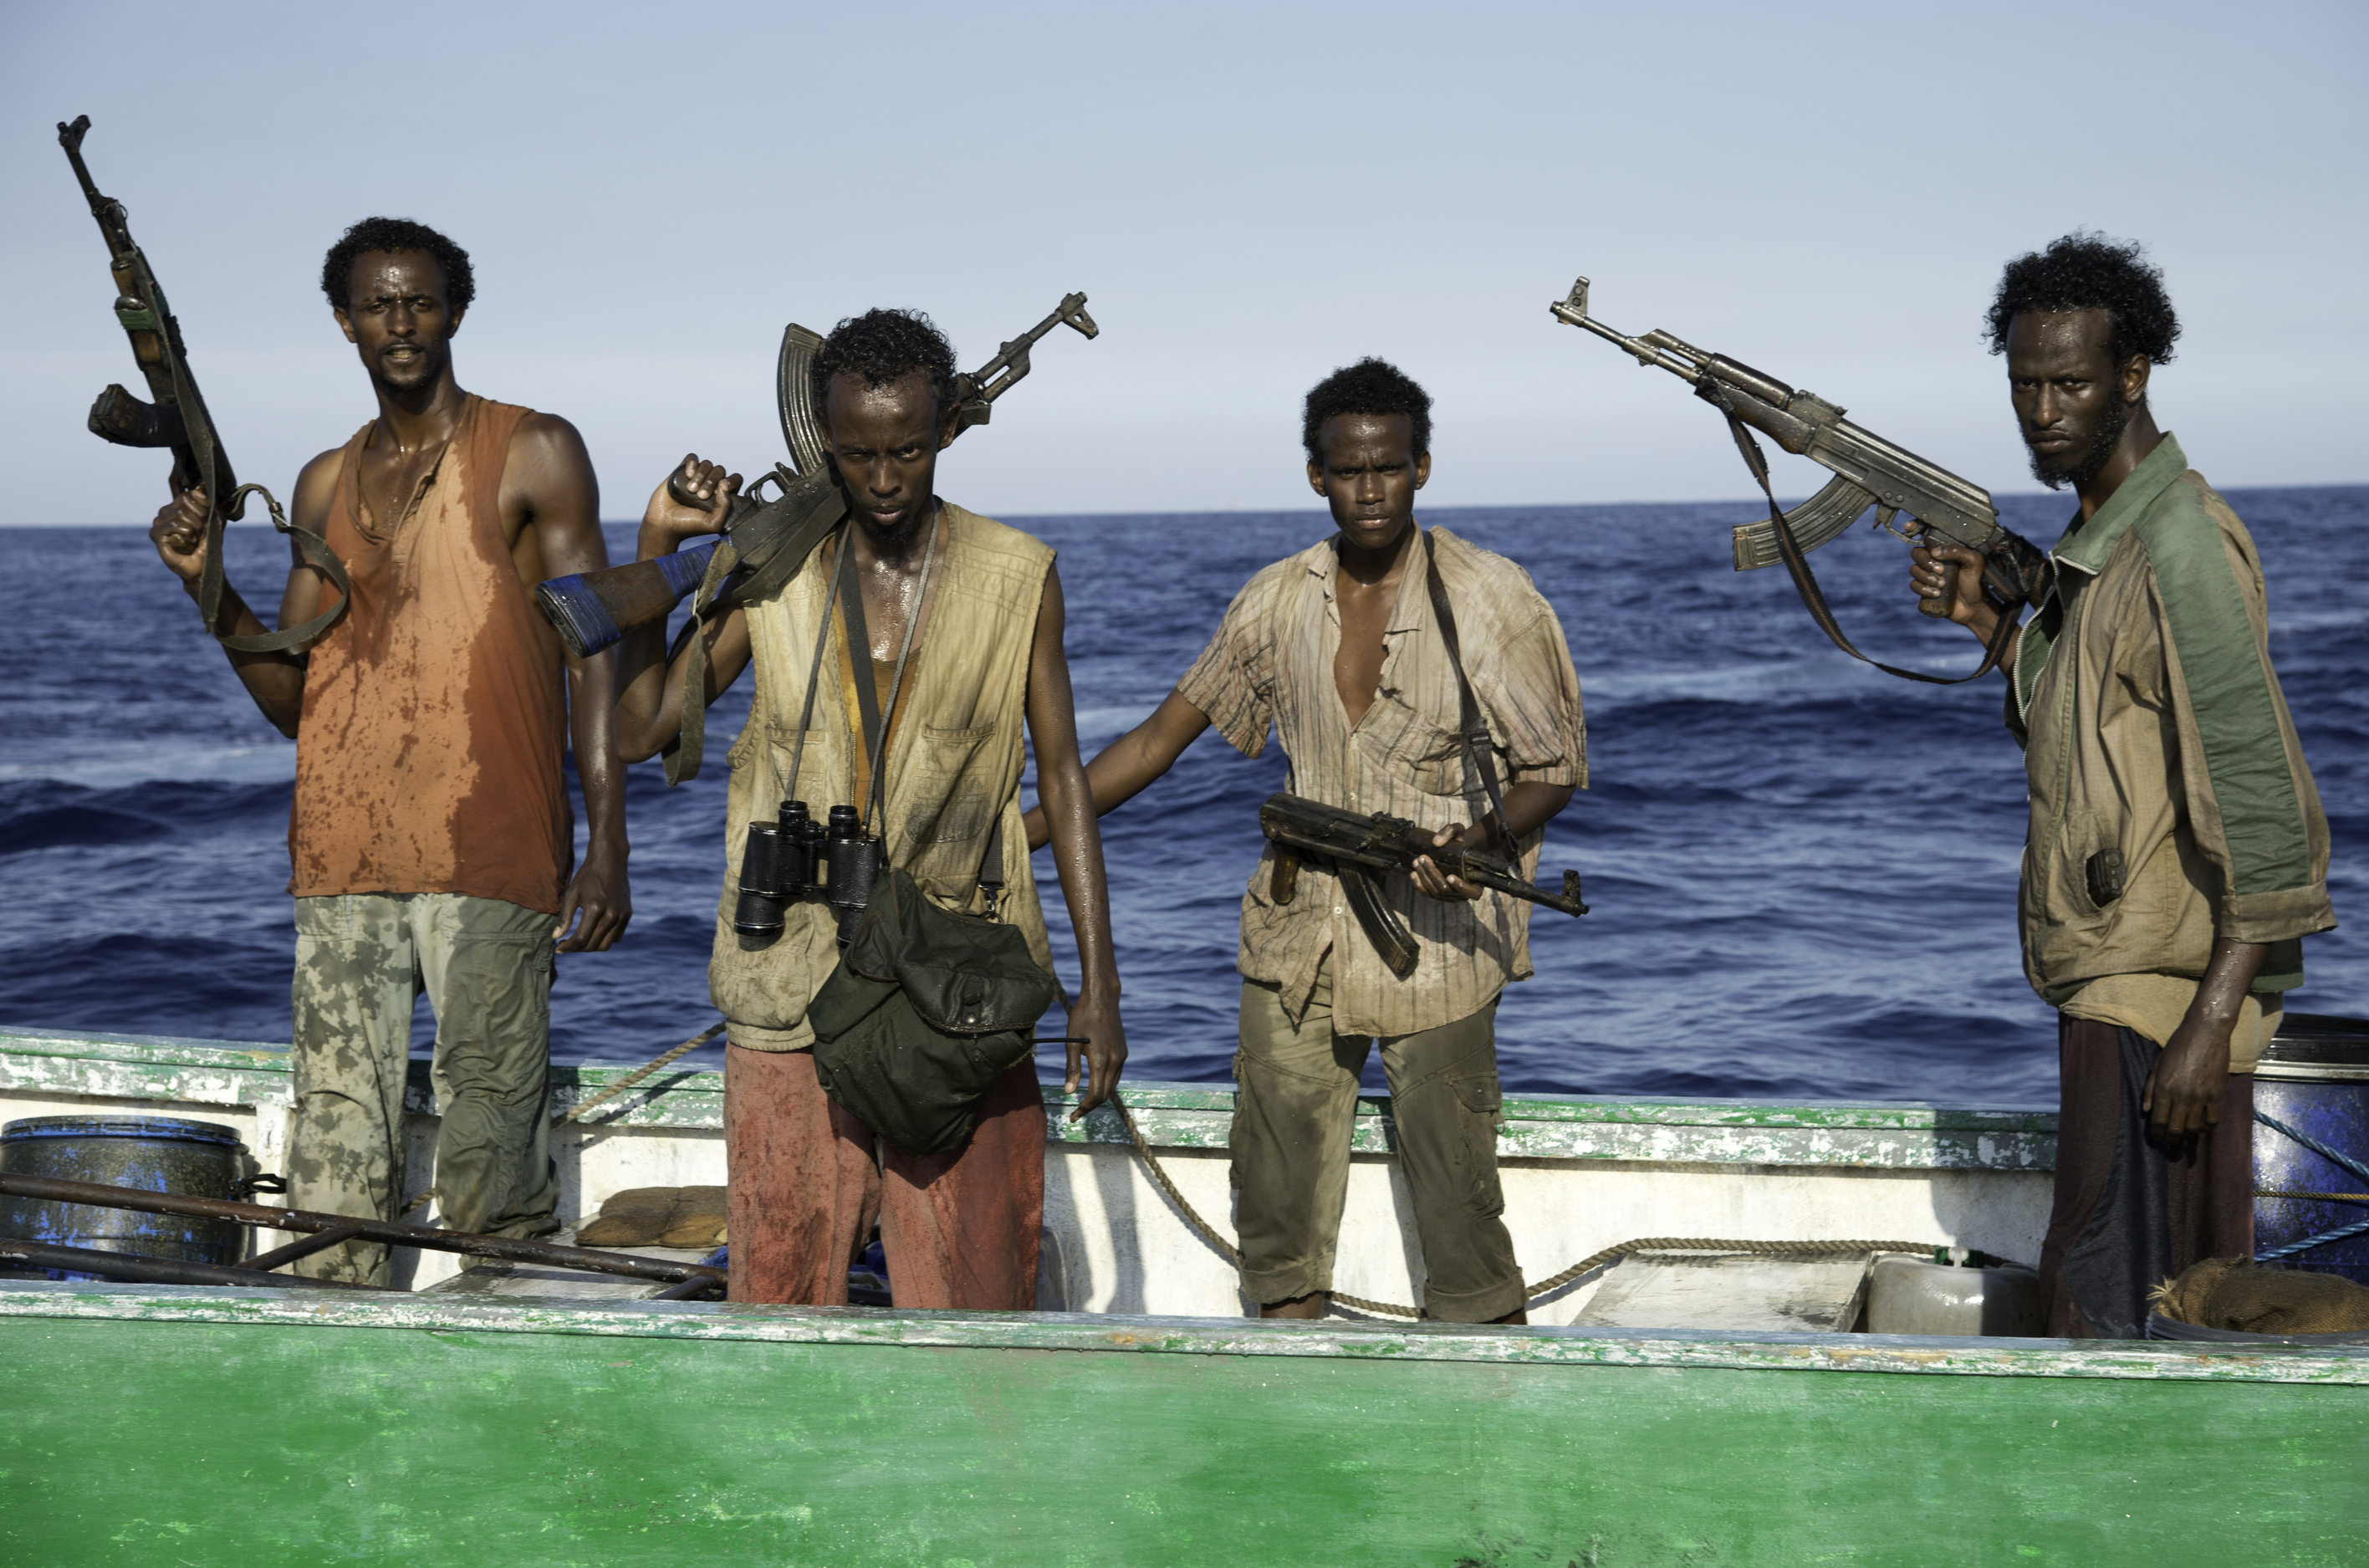 somali piracy thesis Four americans killed by somali pirates - recently the numbers of piracy acts in the somali waters and even farther, in the international waters, have increased, culminating with the latest news of four americans killed on a yacht hijacked by the somali piratesthe two articles presenting the news are four americans killed on yacht.